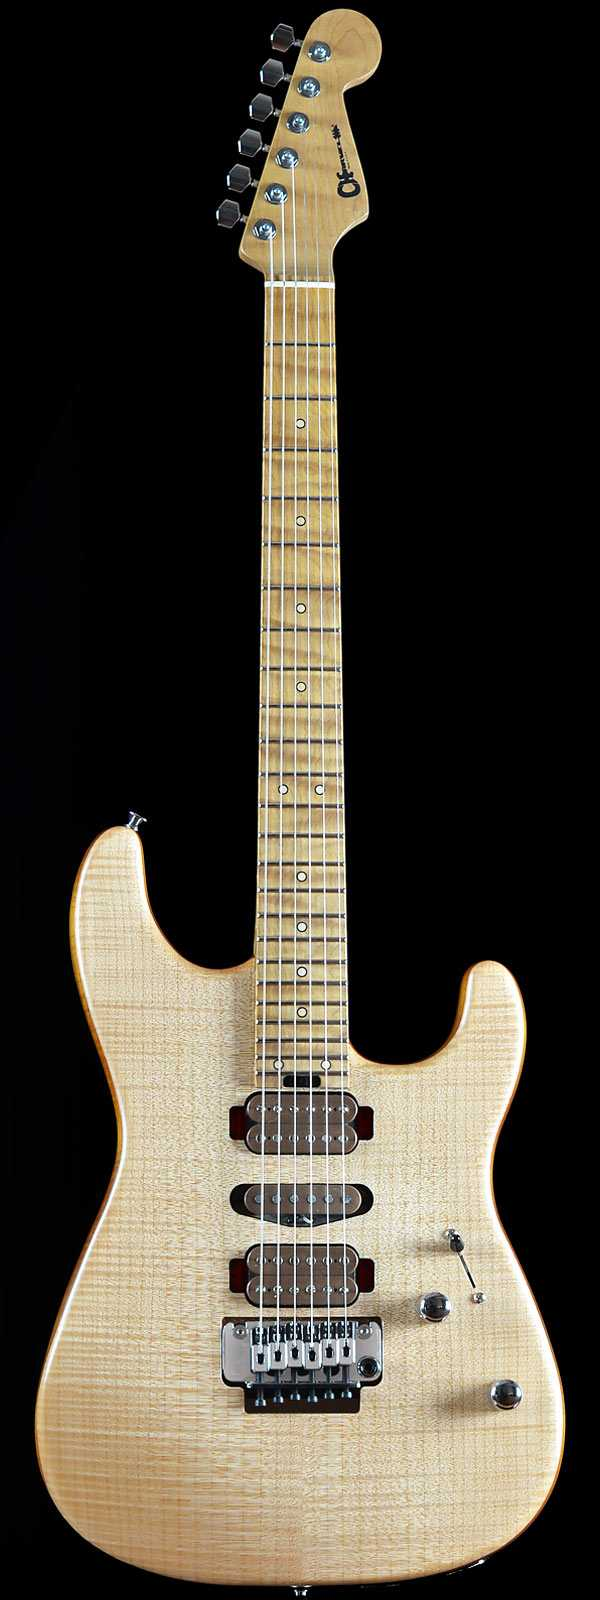 Charvel Guthrie Govan Signature San Dimas Flame Maple - Caramelized Basswood